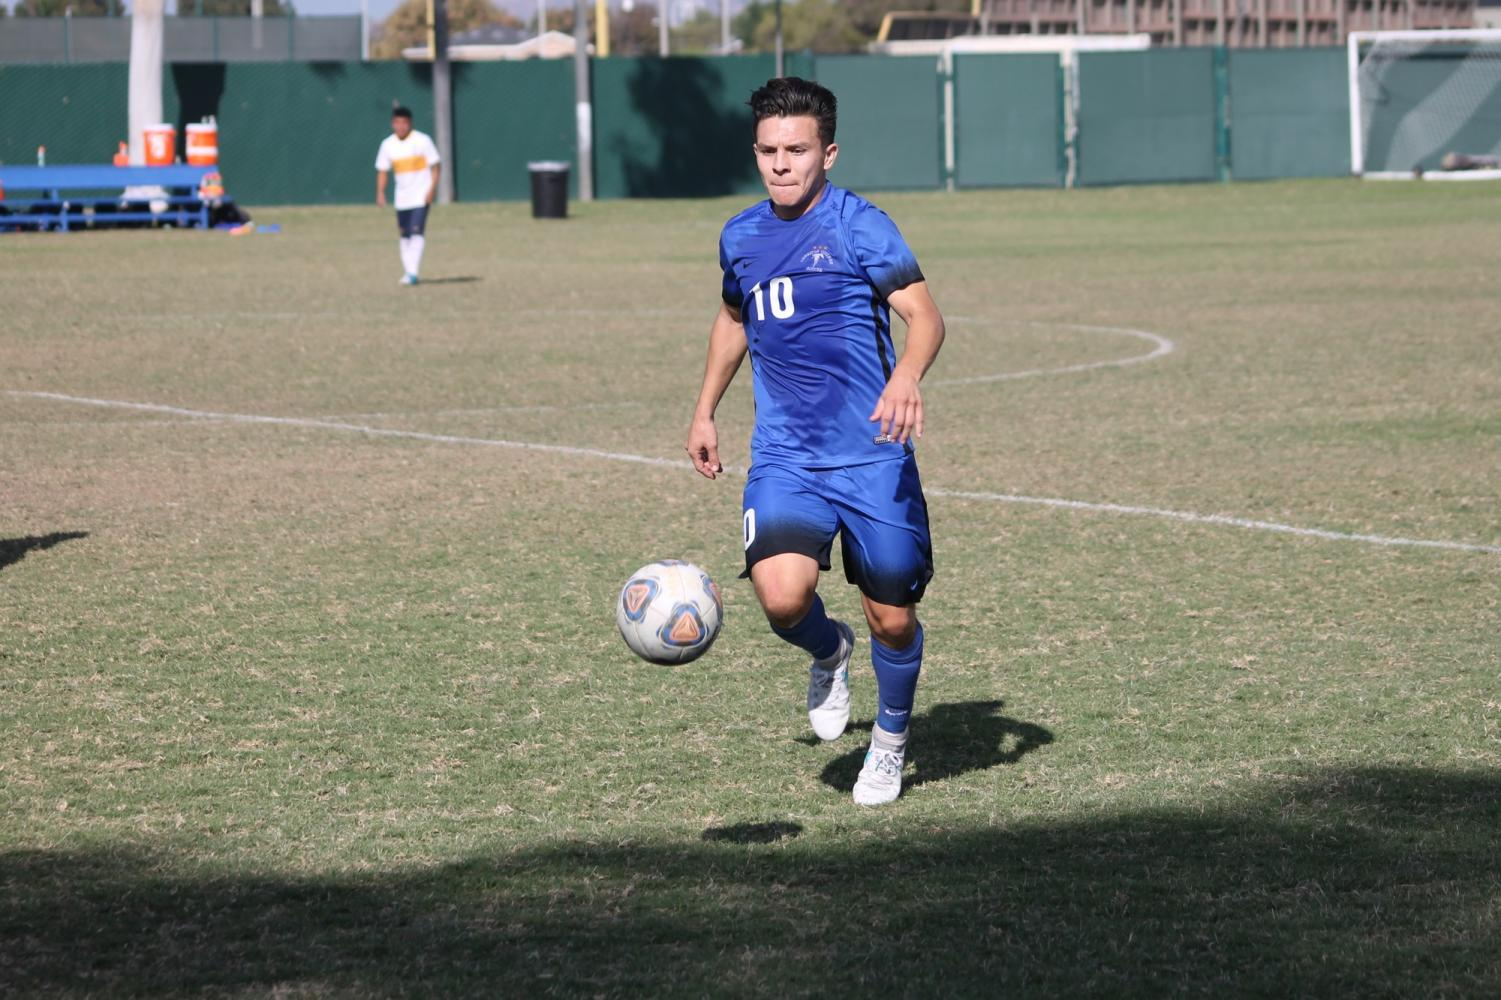 Men's soccer 'absolutely' dominates LA Harbor, completing the shut out, 6-0